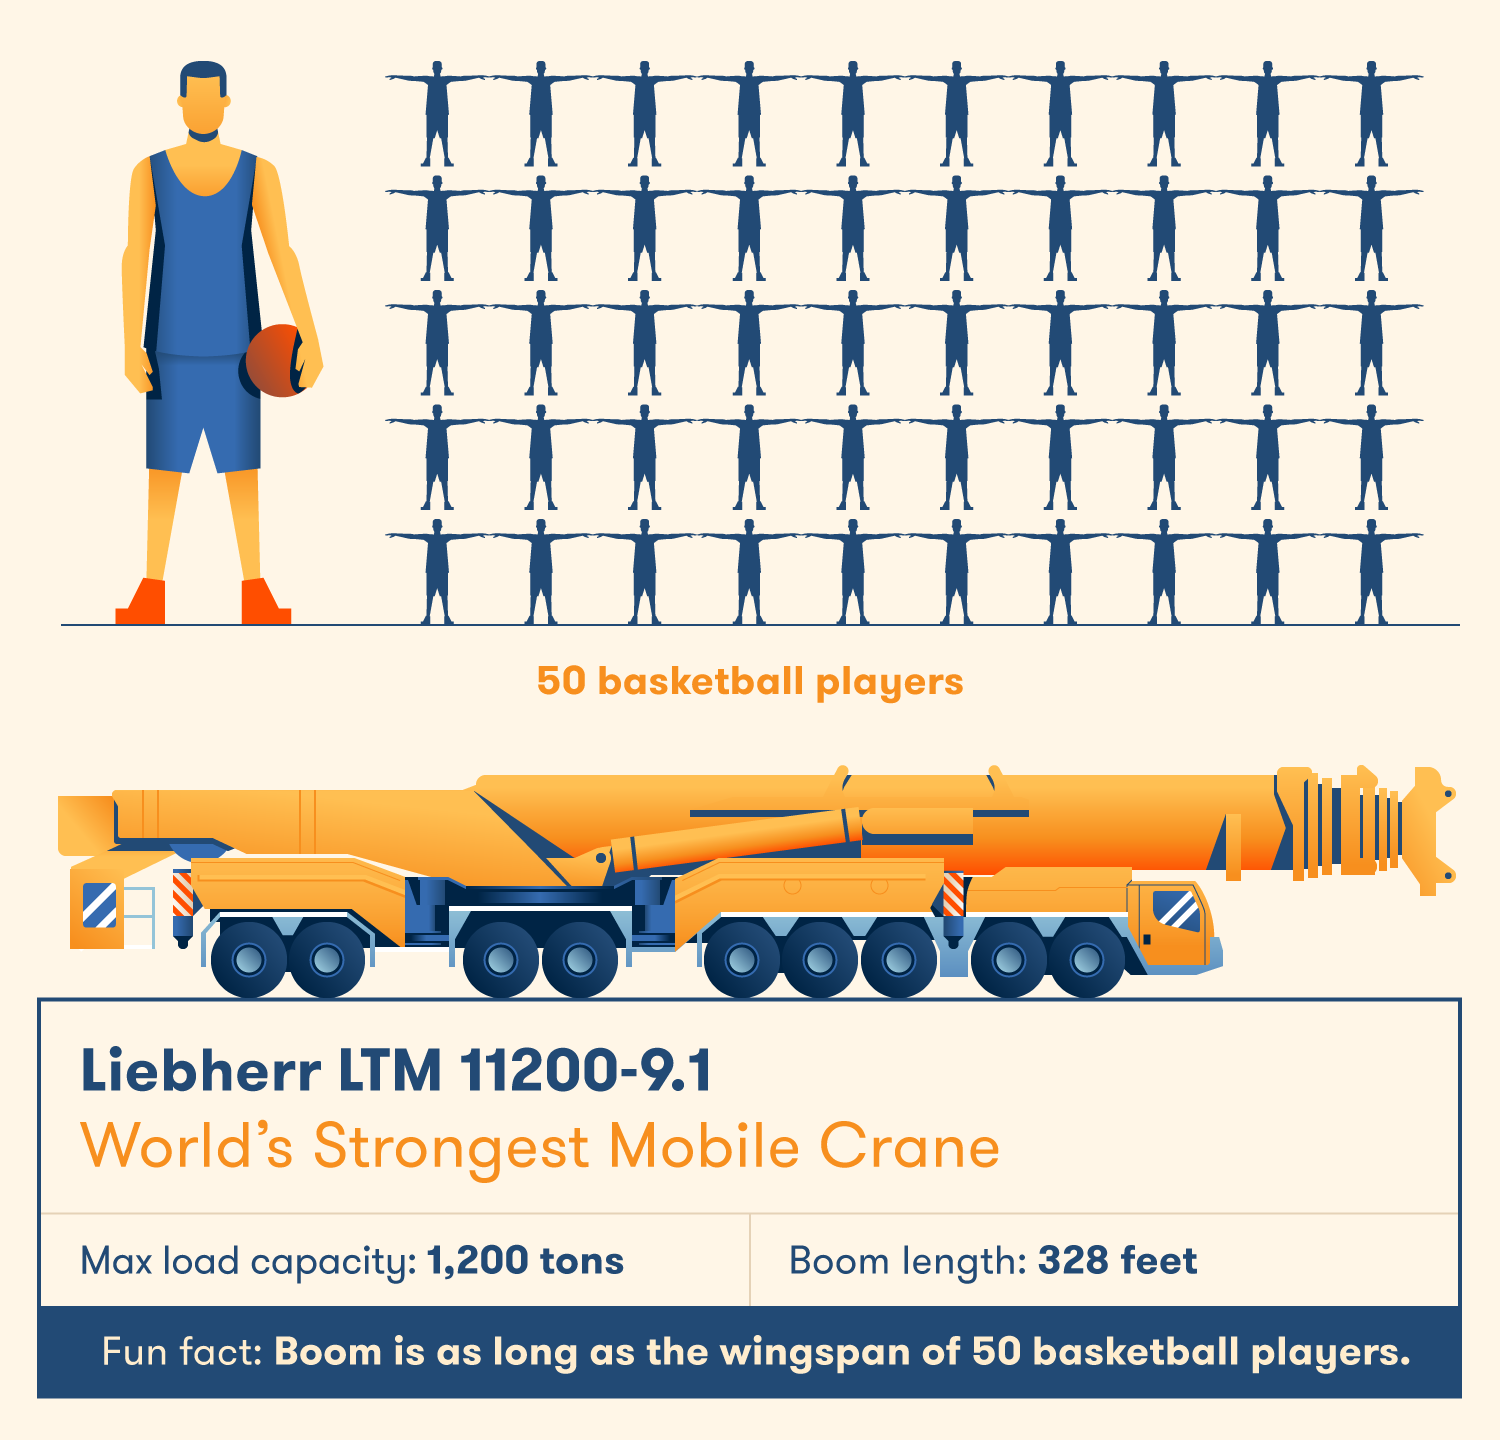 The Liebherr LTM-12000-9.1 is the world's strongest mobile crane.